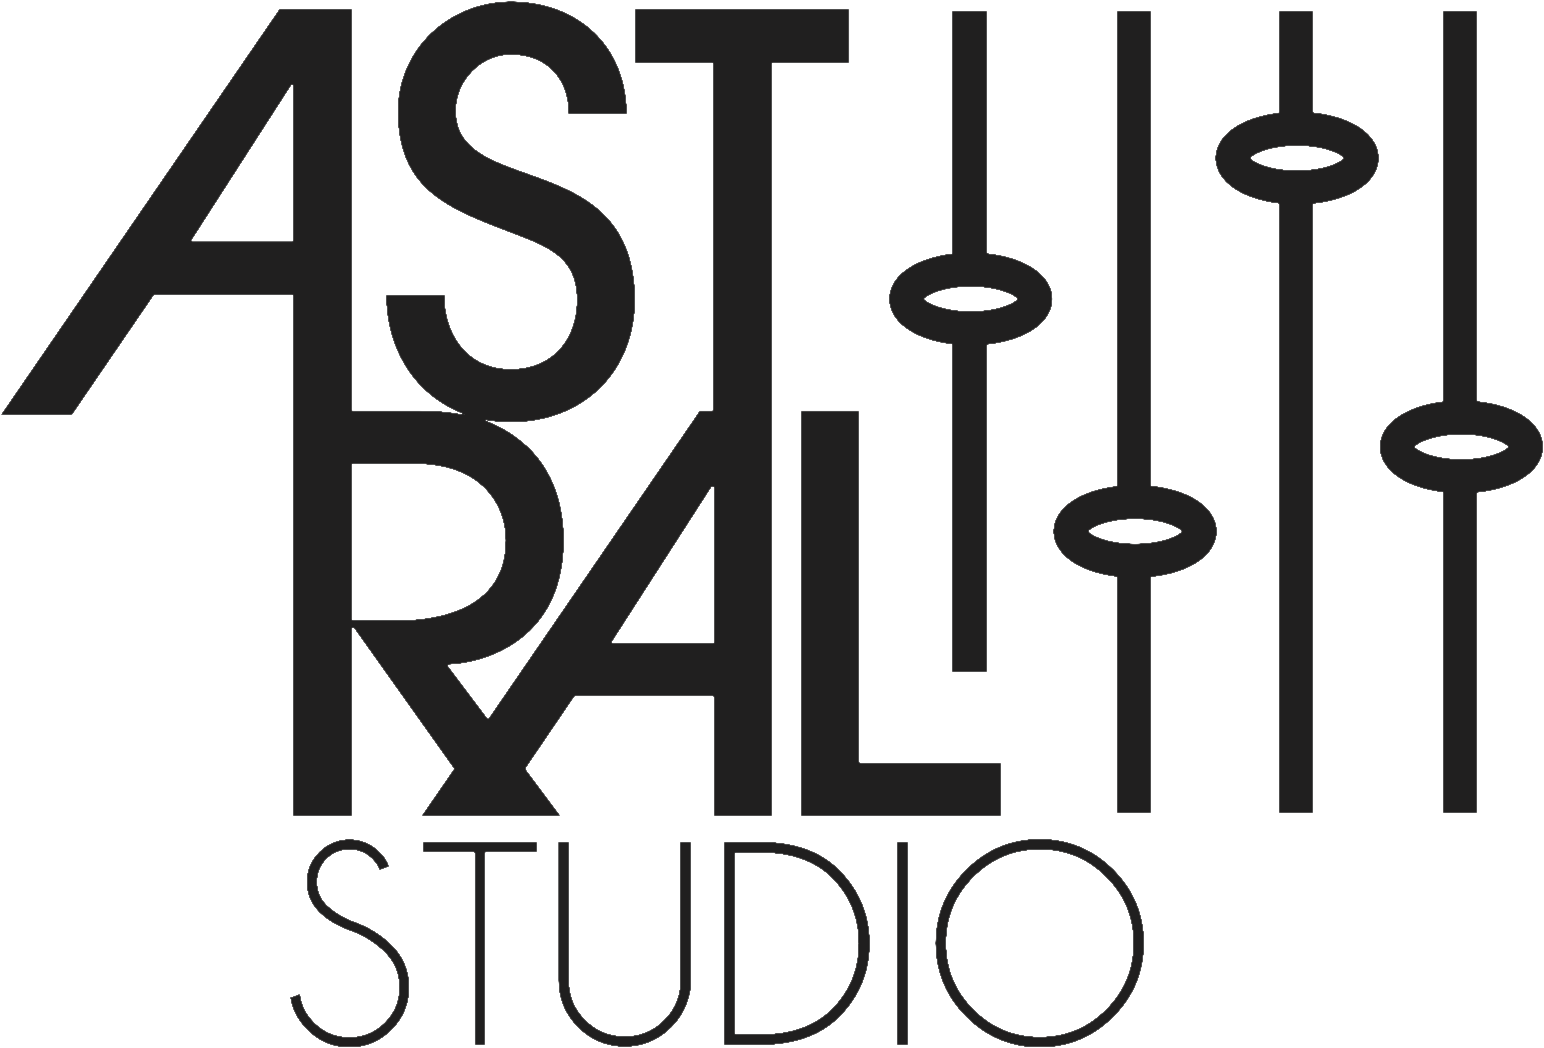 Astral Studio logo